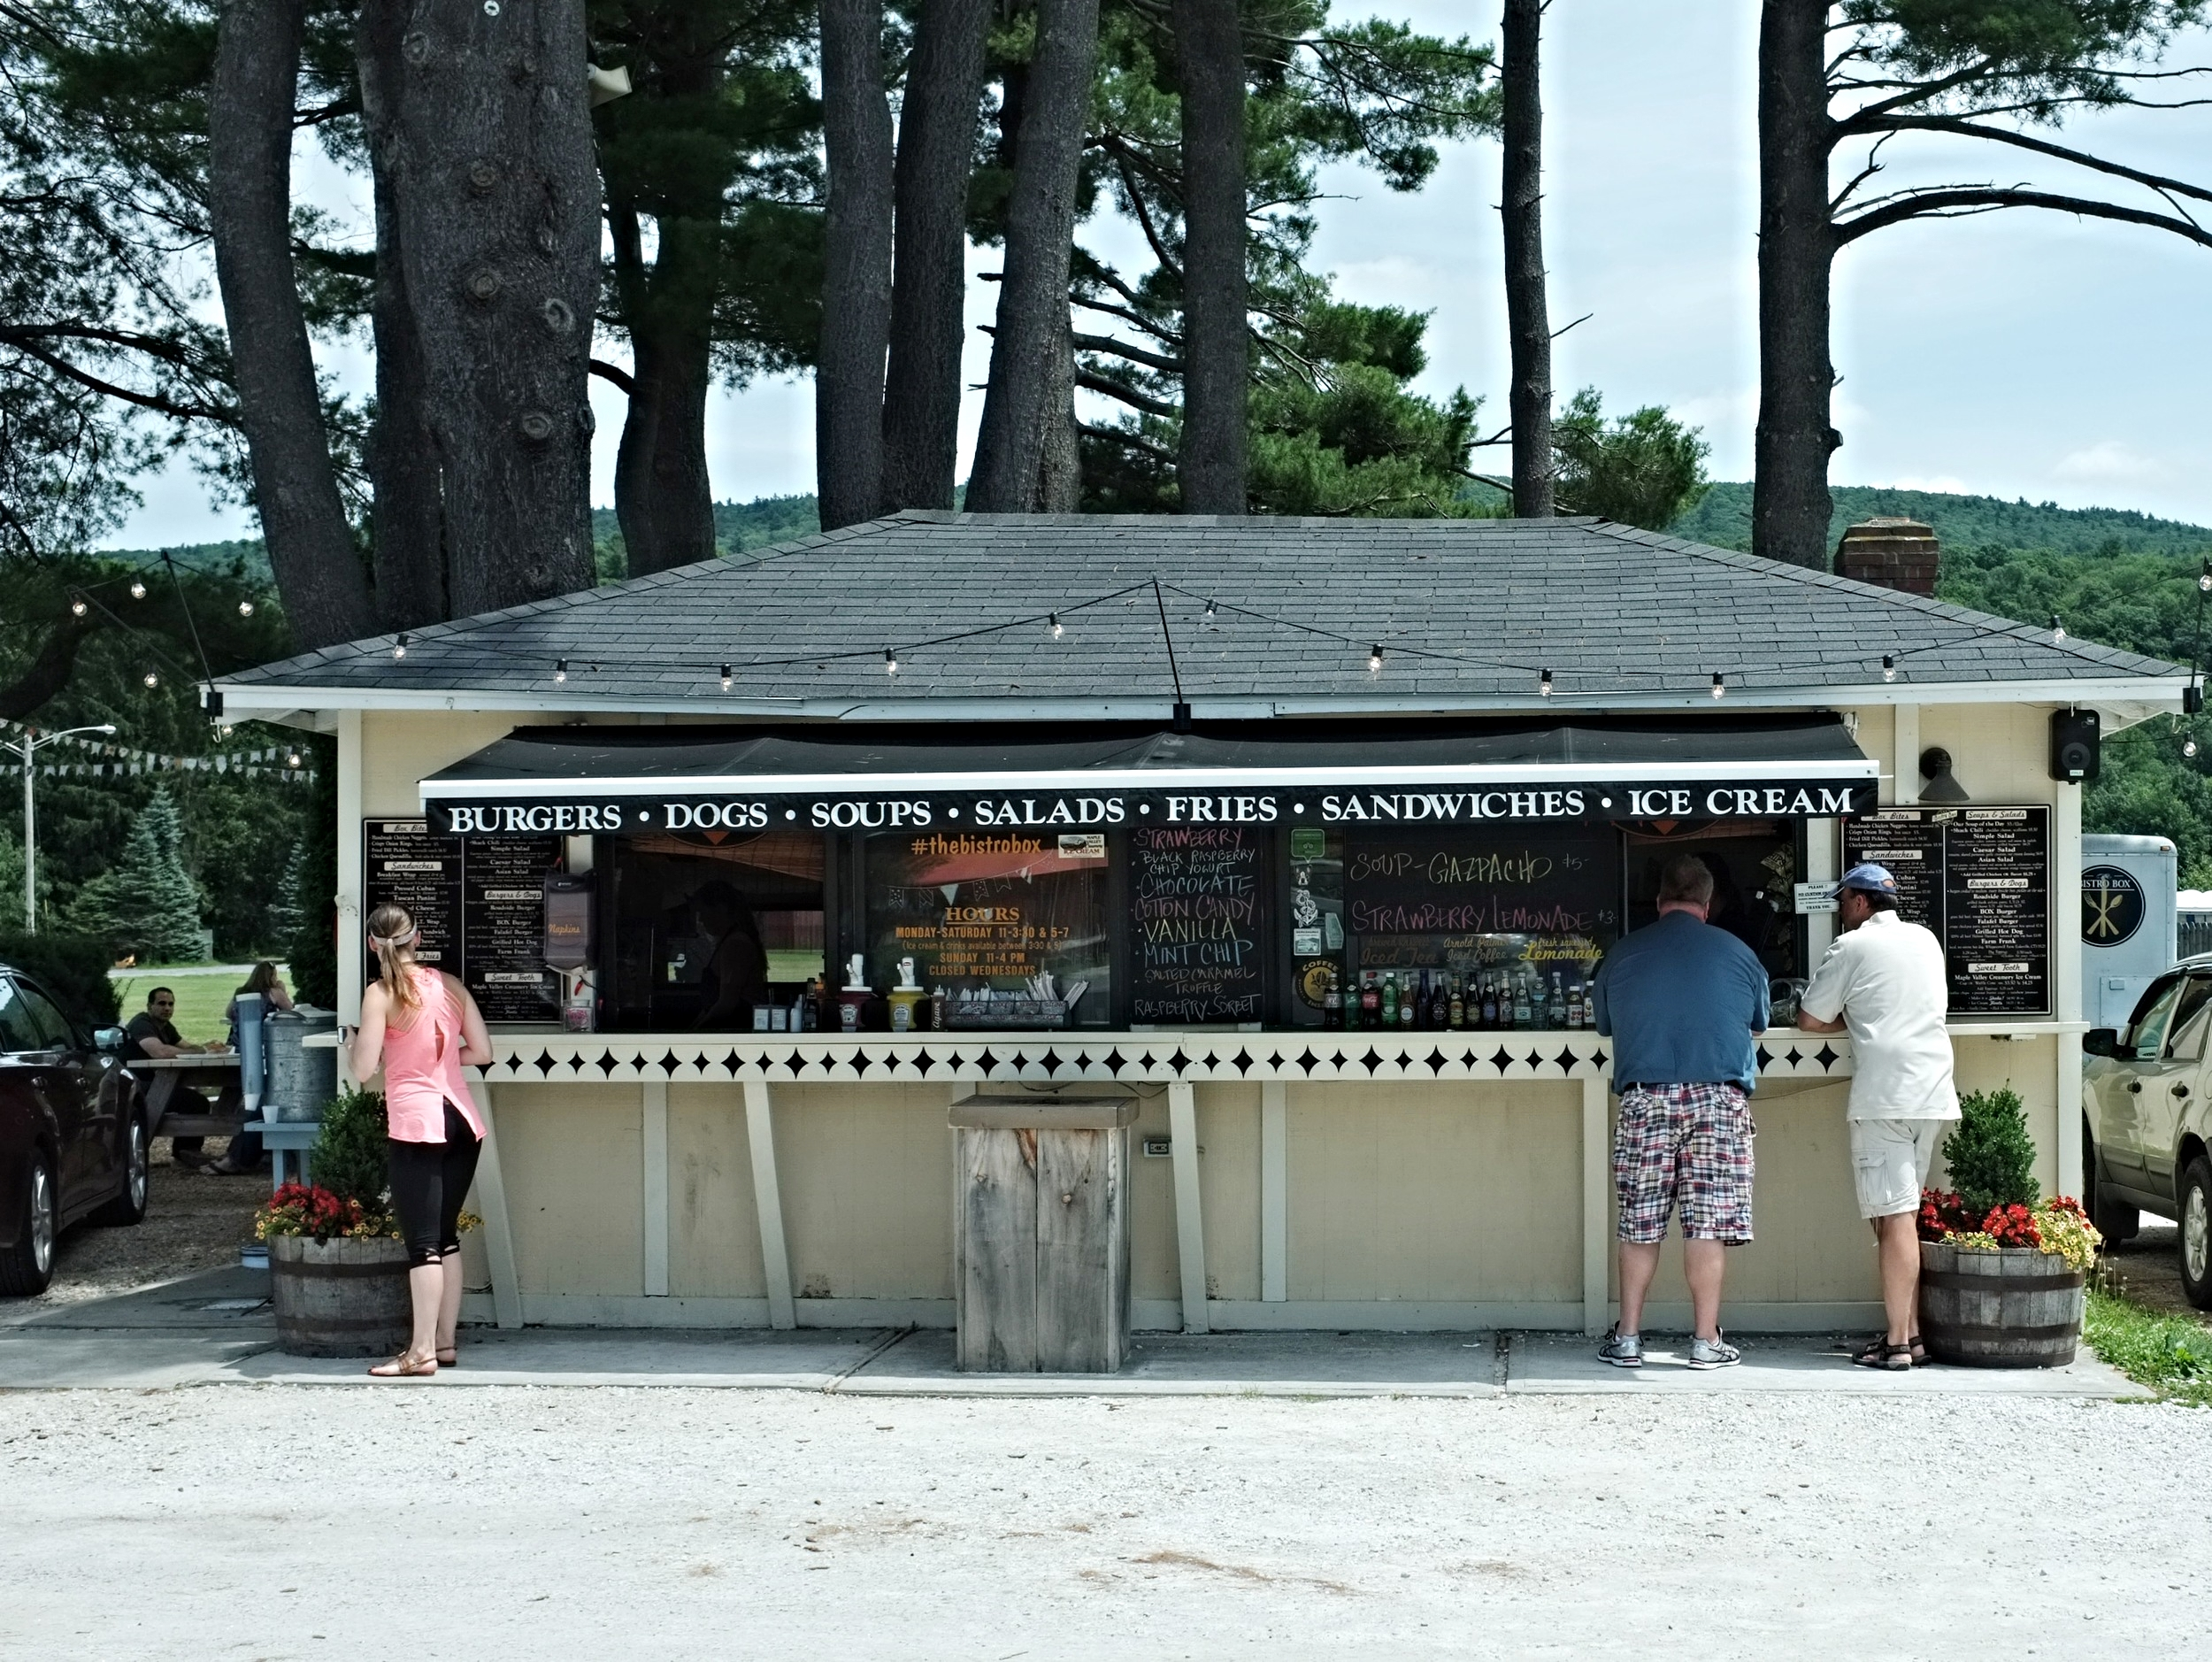 the Bistro Box counter where you place your order.